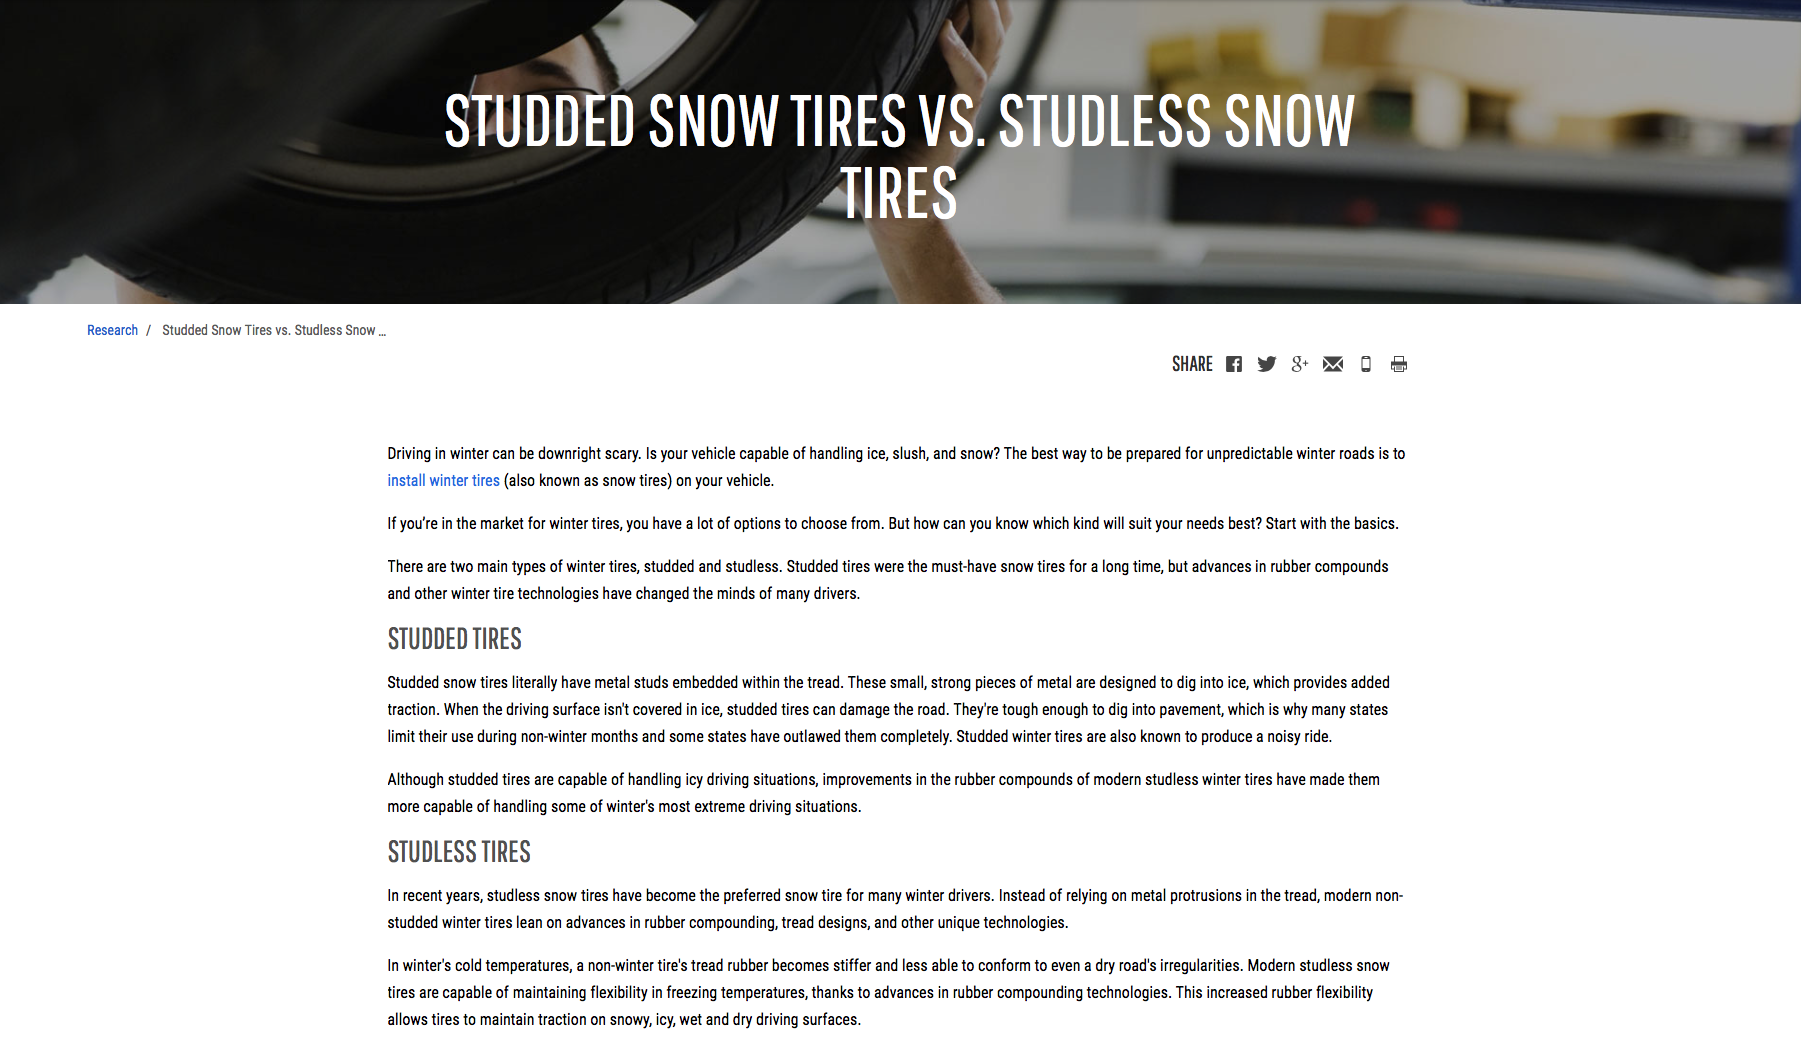 Studded versus Studless Tires